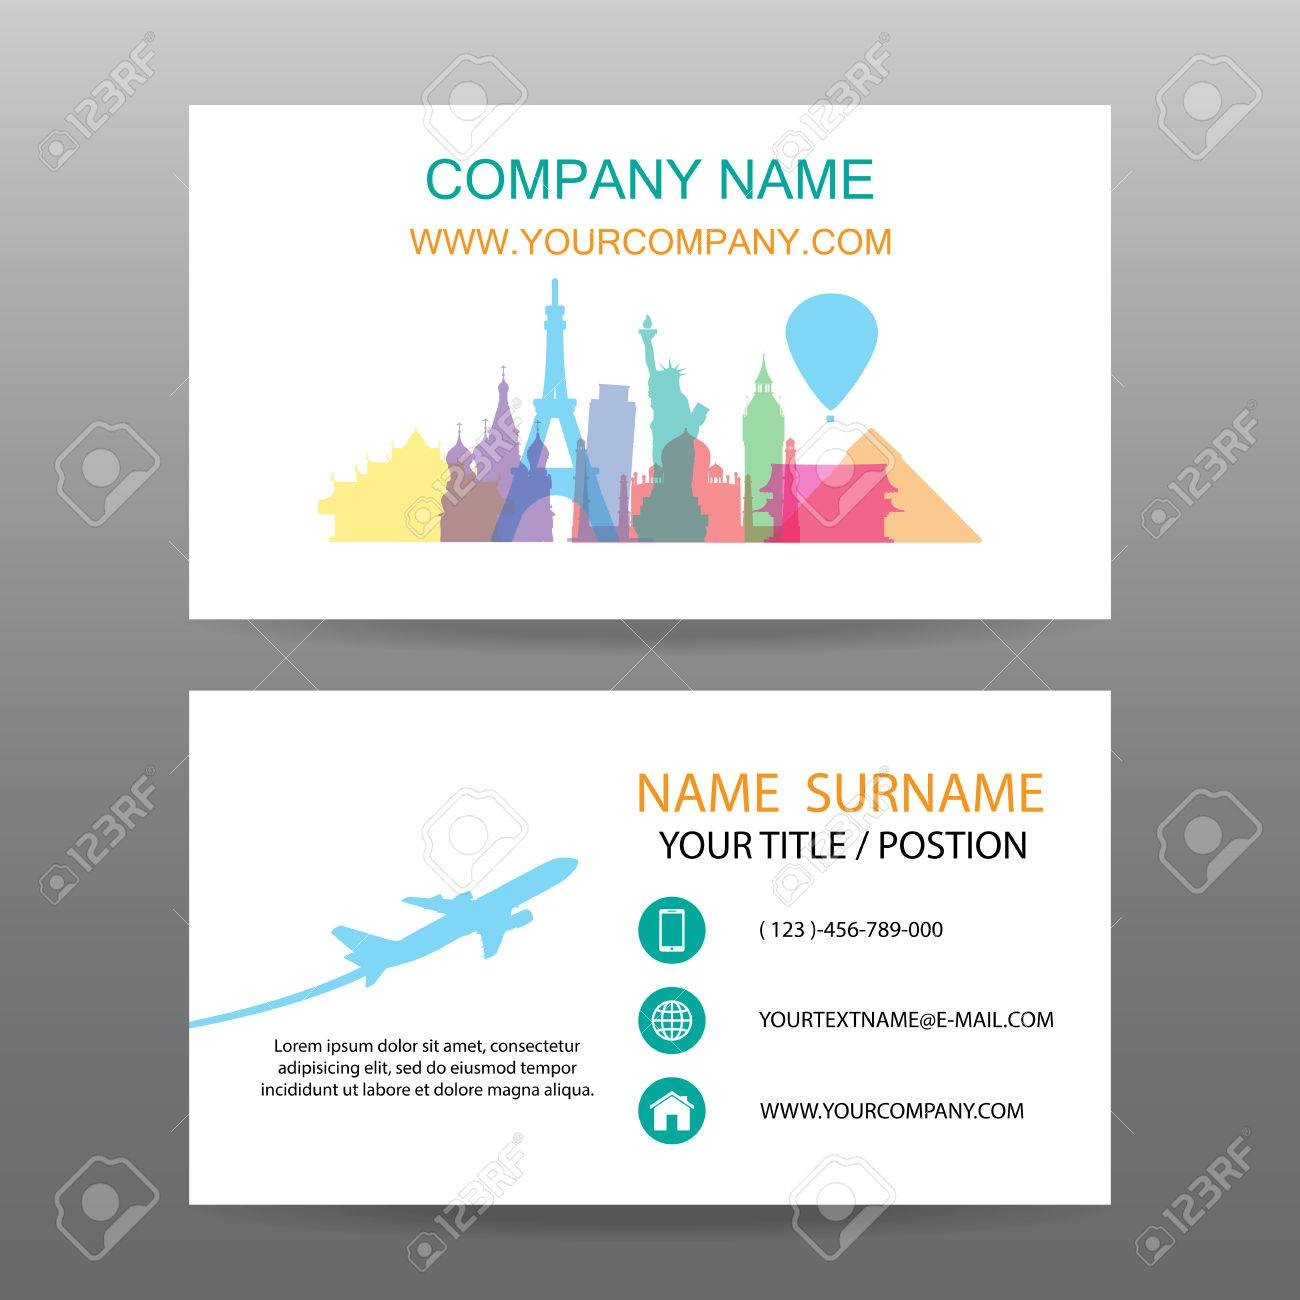 Business Card Vector Background, Guide Tour Companies Royalty Free ...